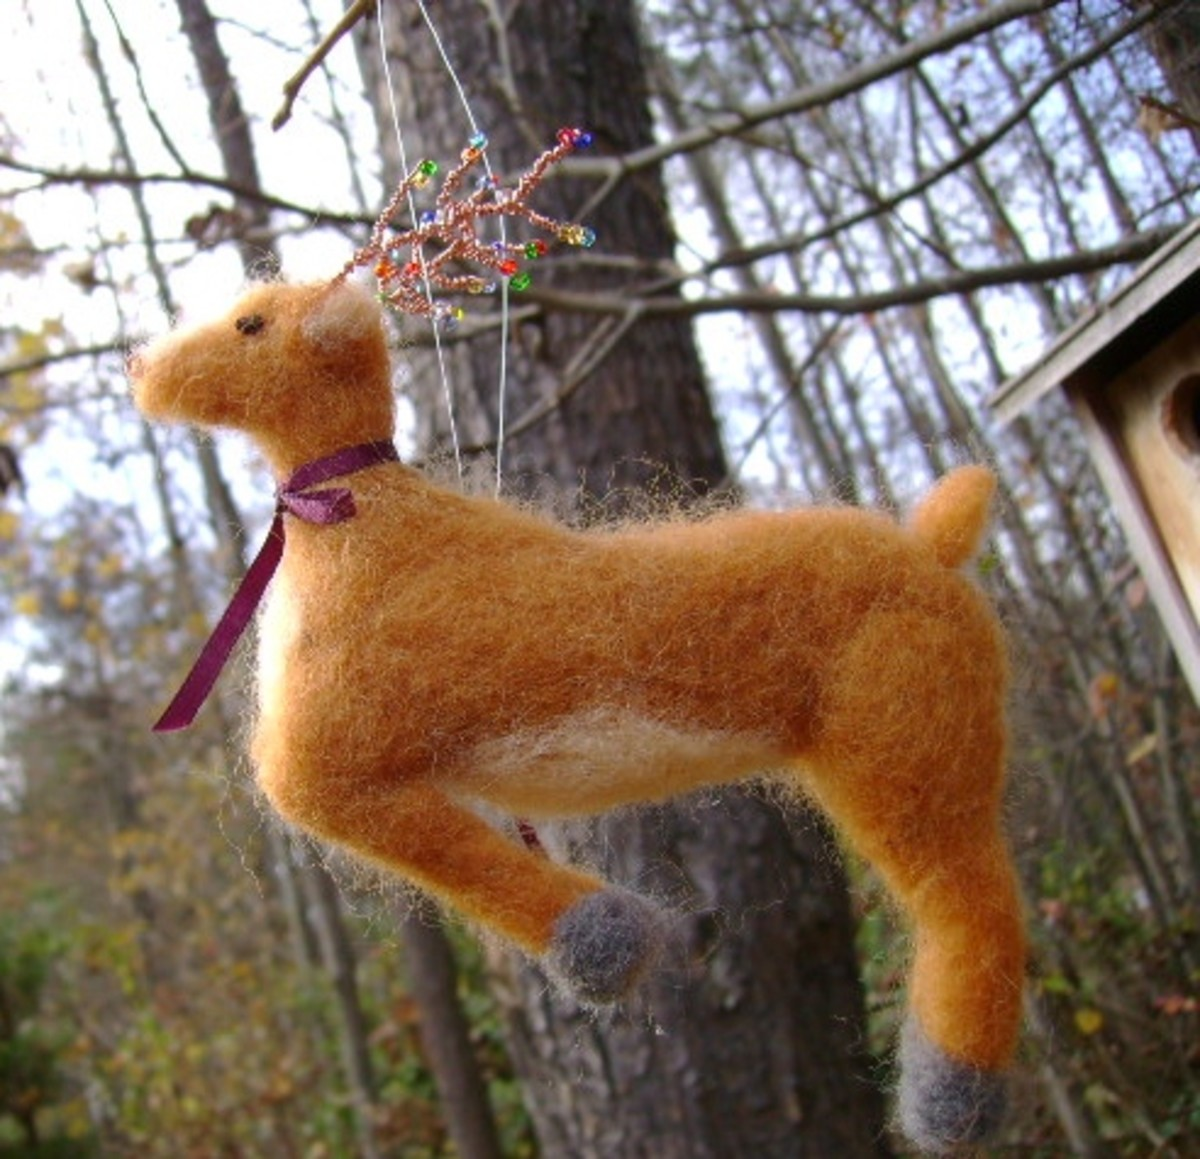 A Newbie's Guide to Needle Felting a Reindeer Christmas Ornament